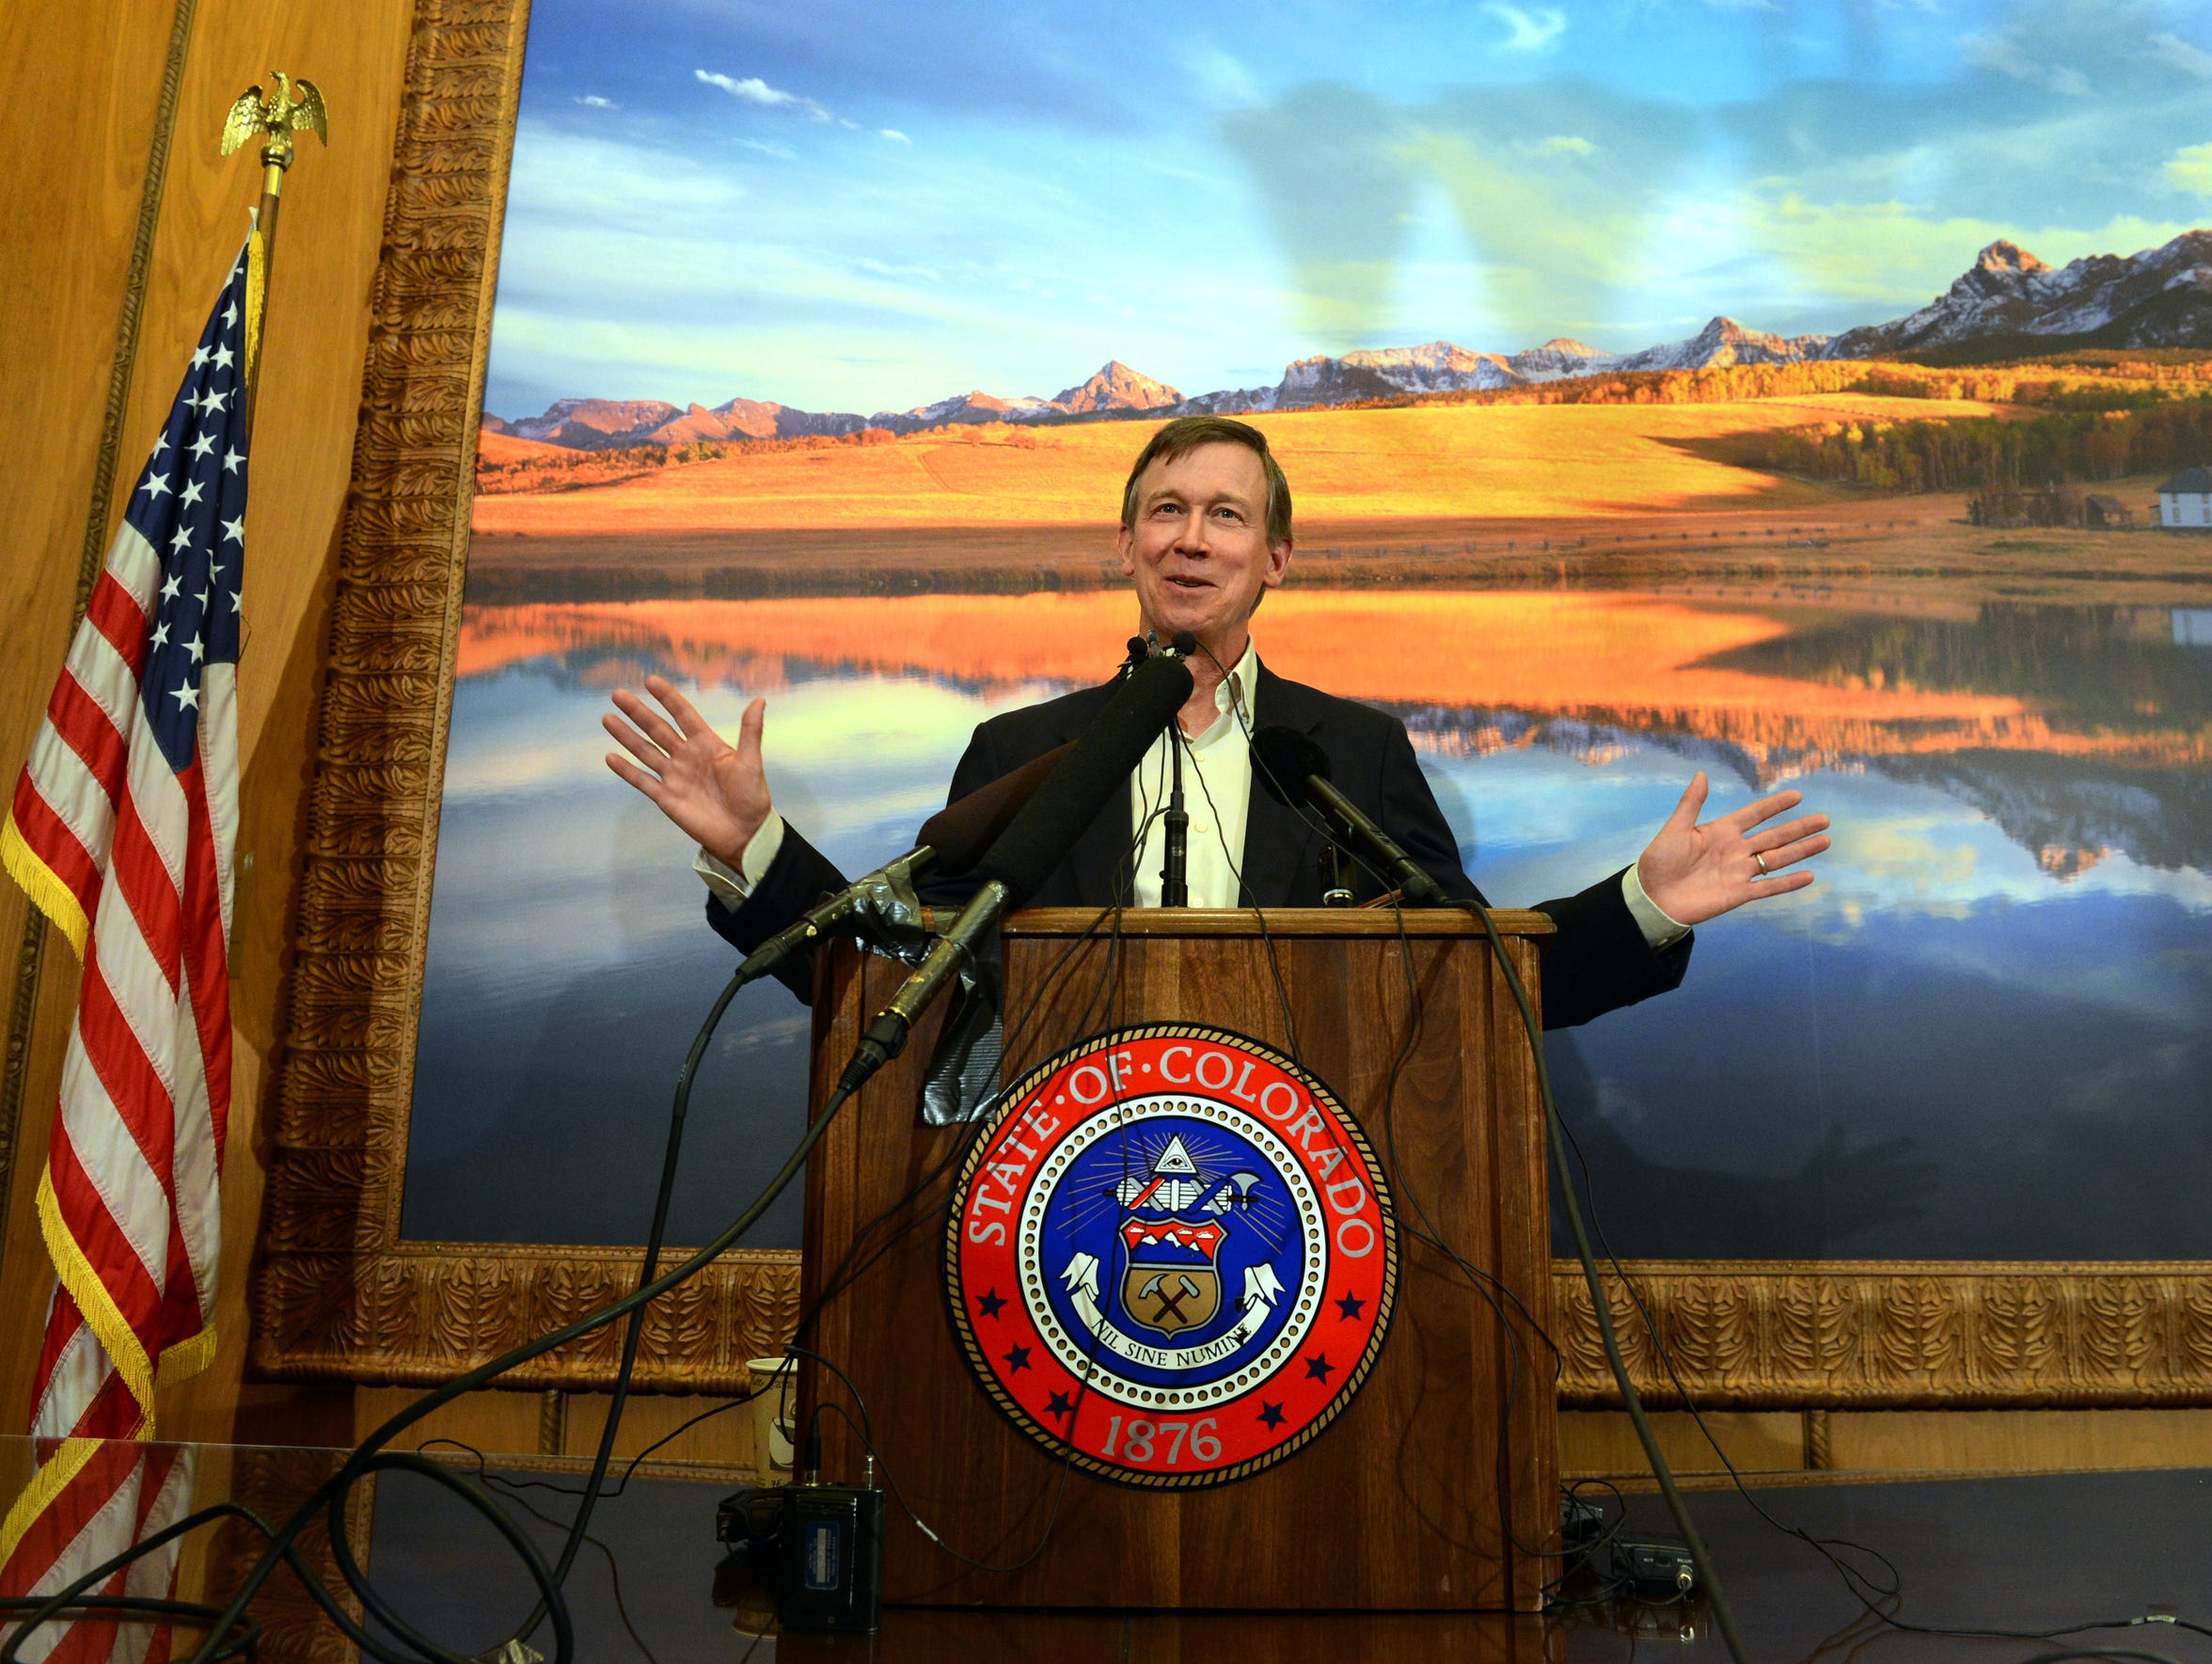 Gov. John Hickenlooper talks about Amendment 64 at